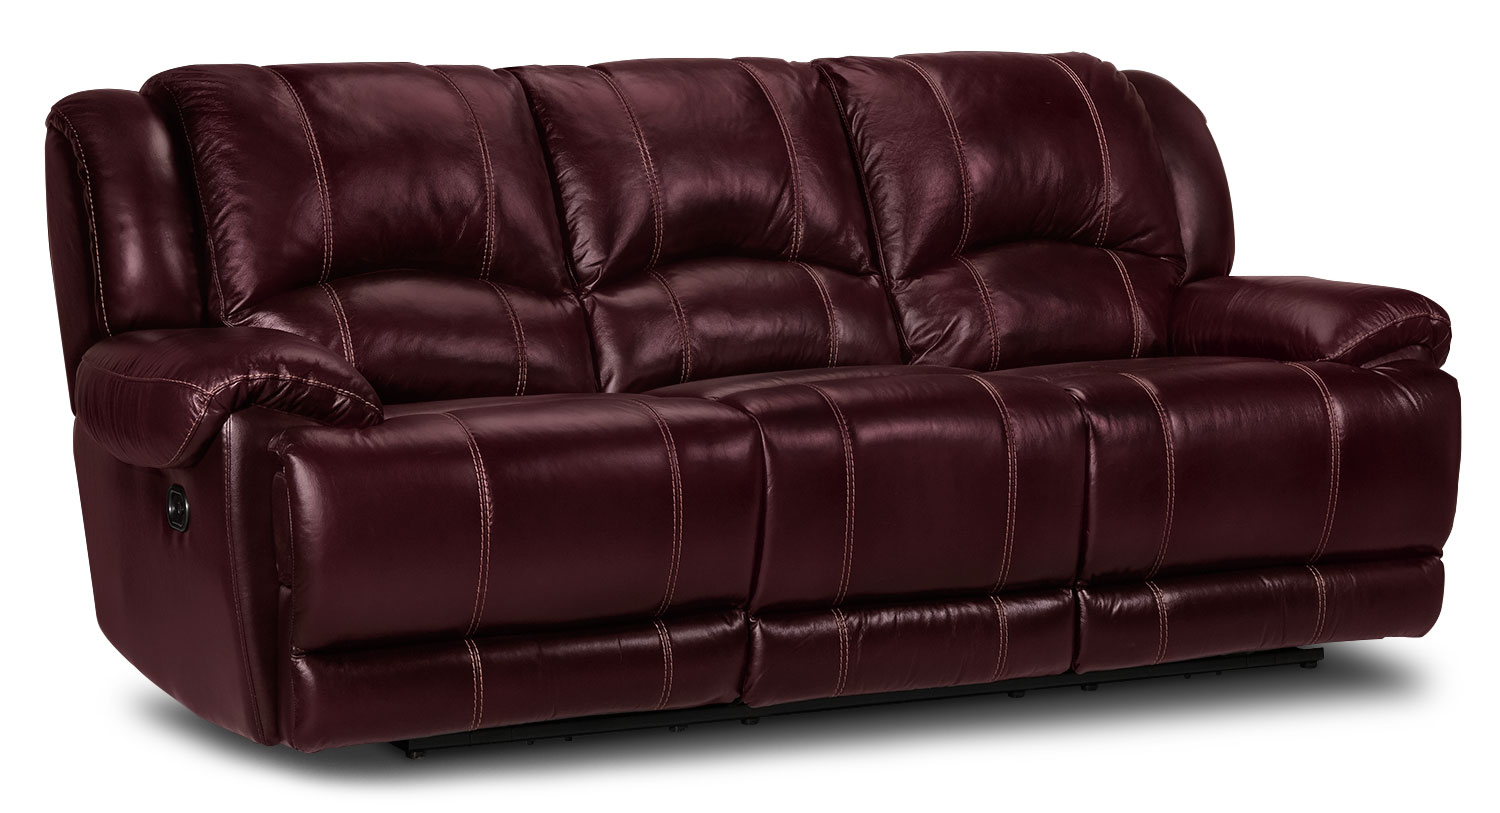 Living Room Furniture - Sinatra Power Reclining Sofa - Red